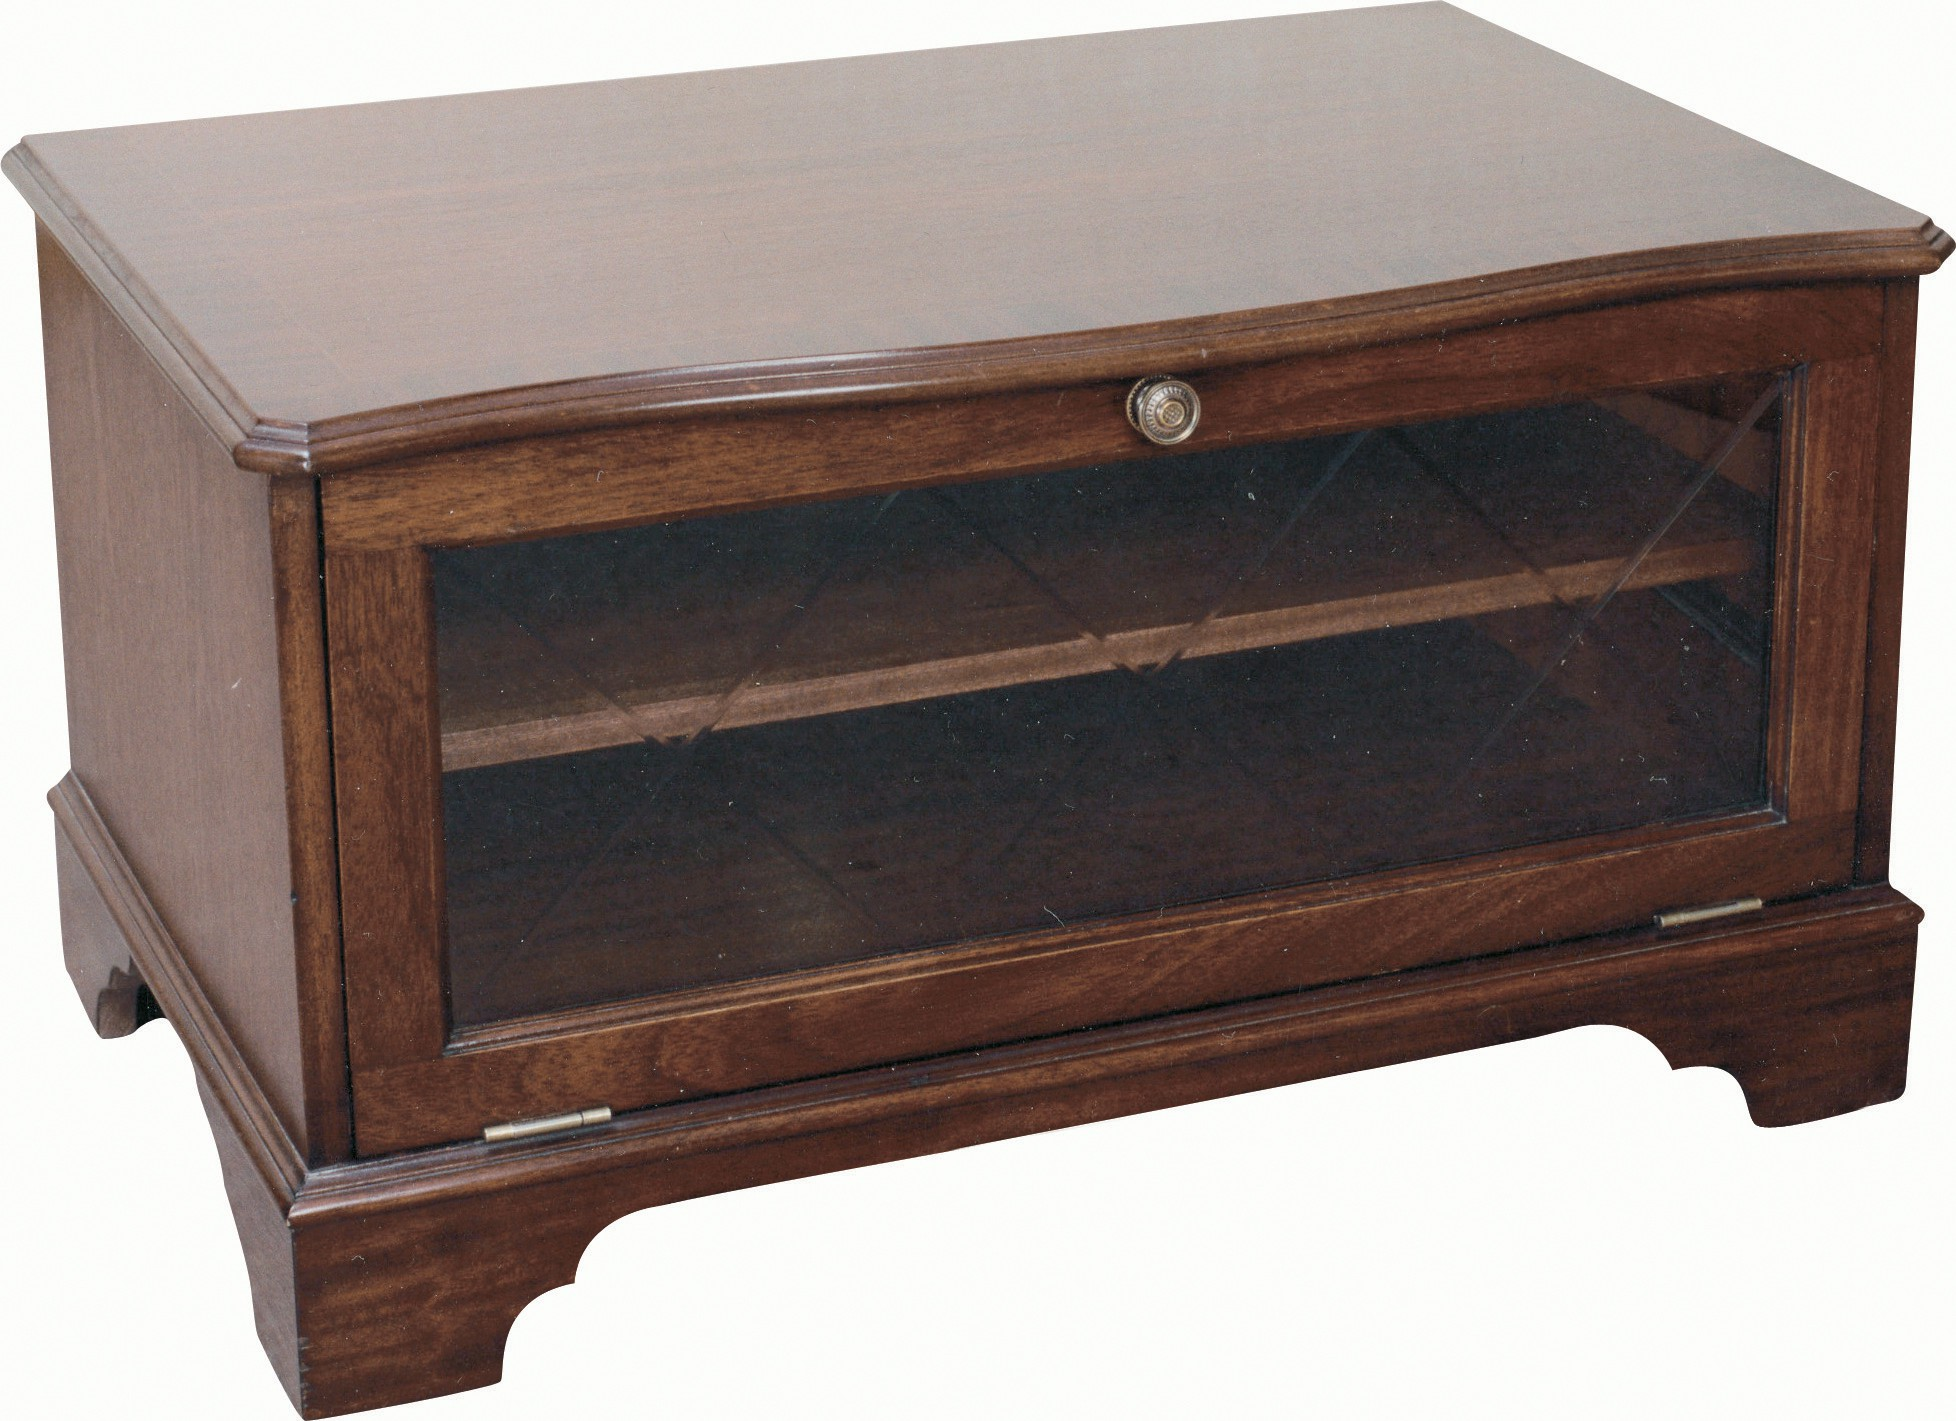 Medium TV Stand Glass